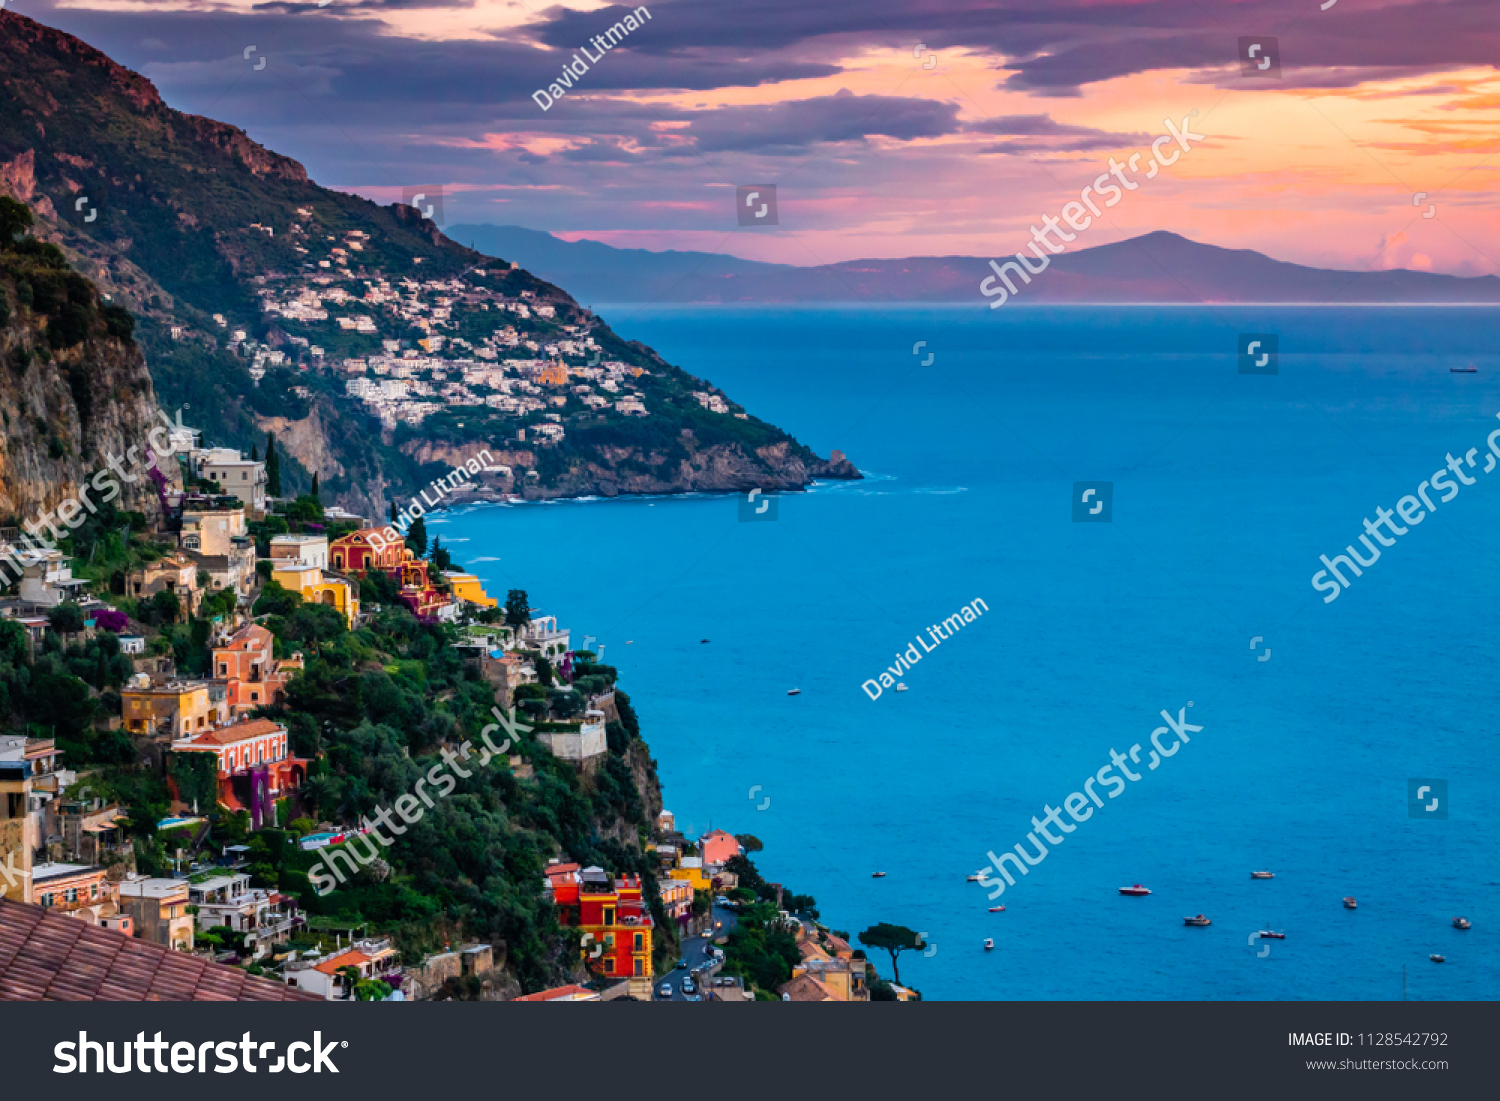 Panoramic sunset view of the Amalfi Coast of southern Italy, including colorful buildings of Positano in the foreground as well as Praiano in distance.